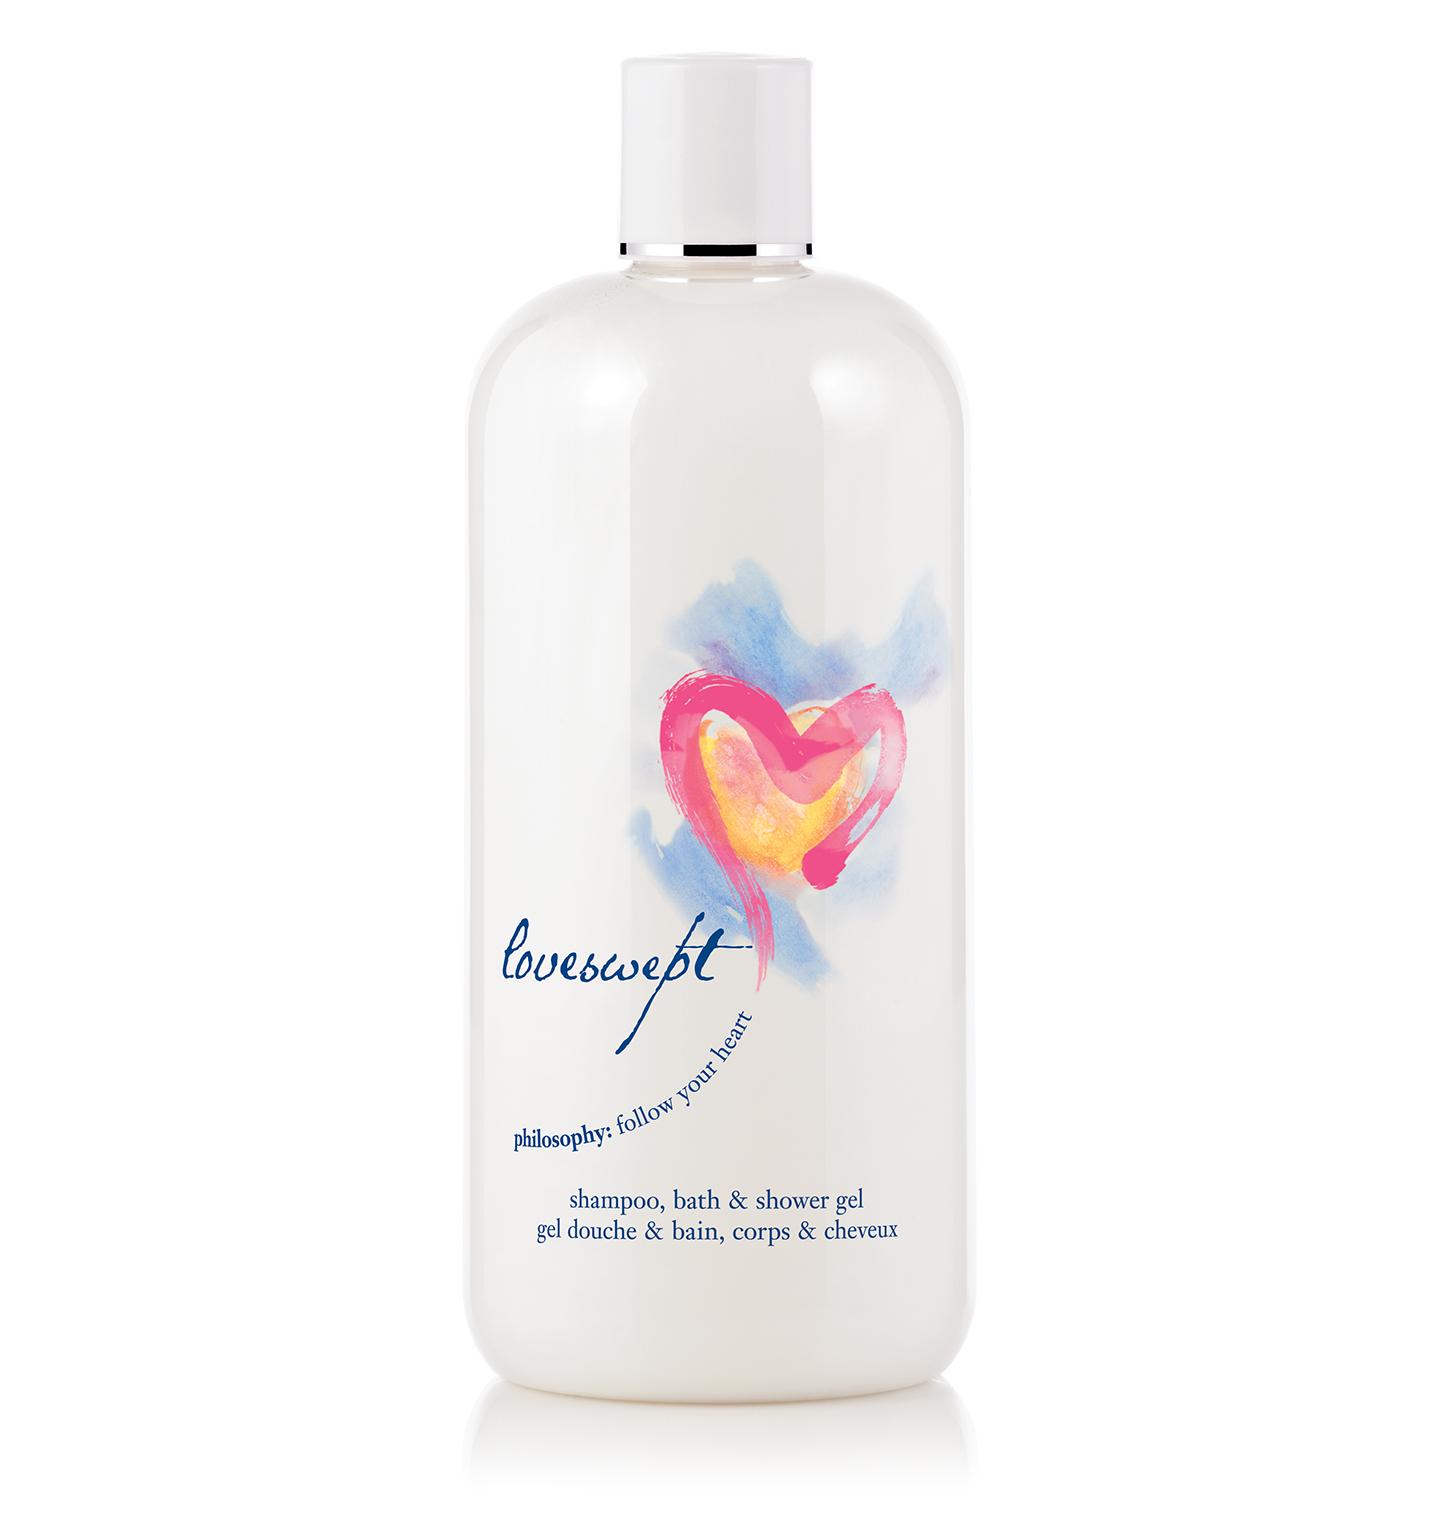 philosophy, loveswept shower gel